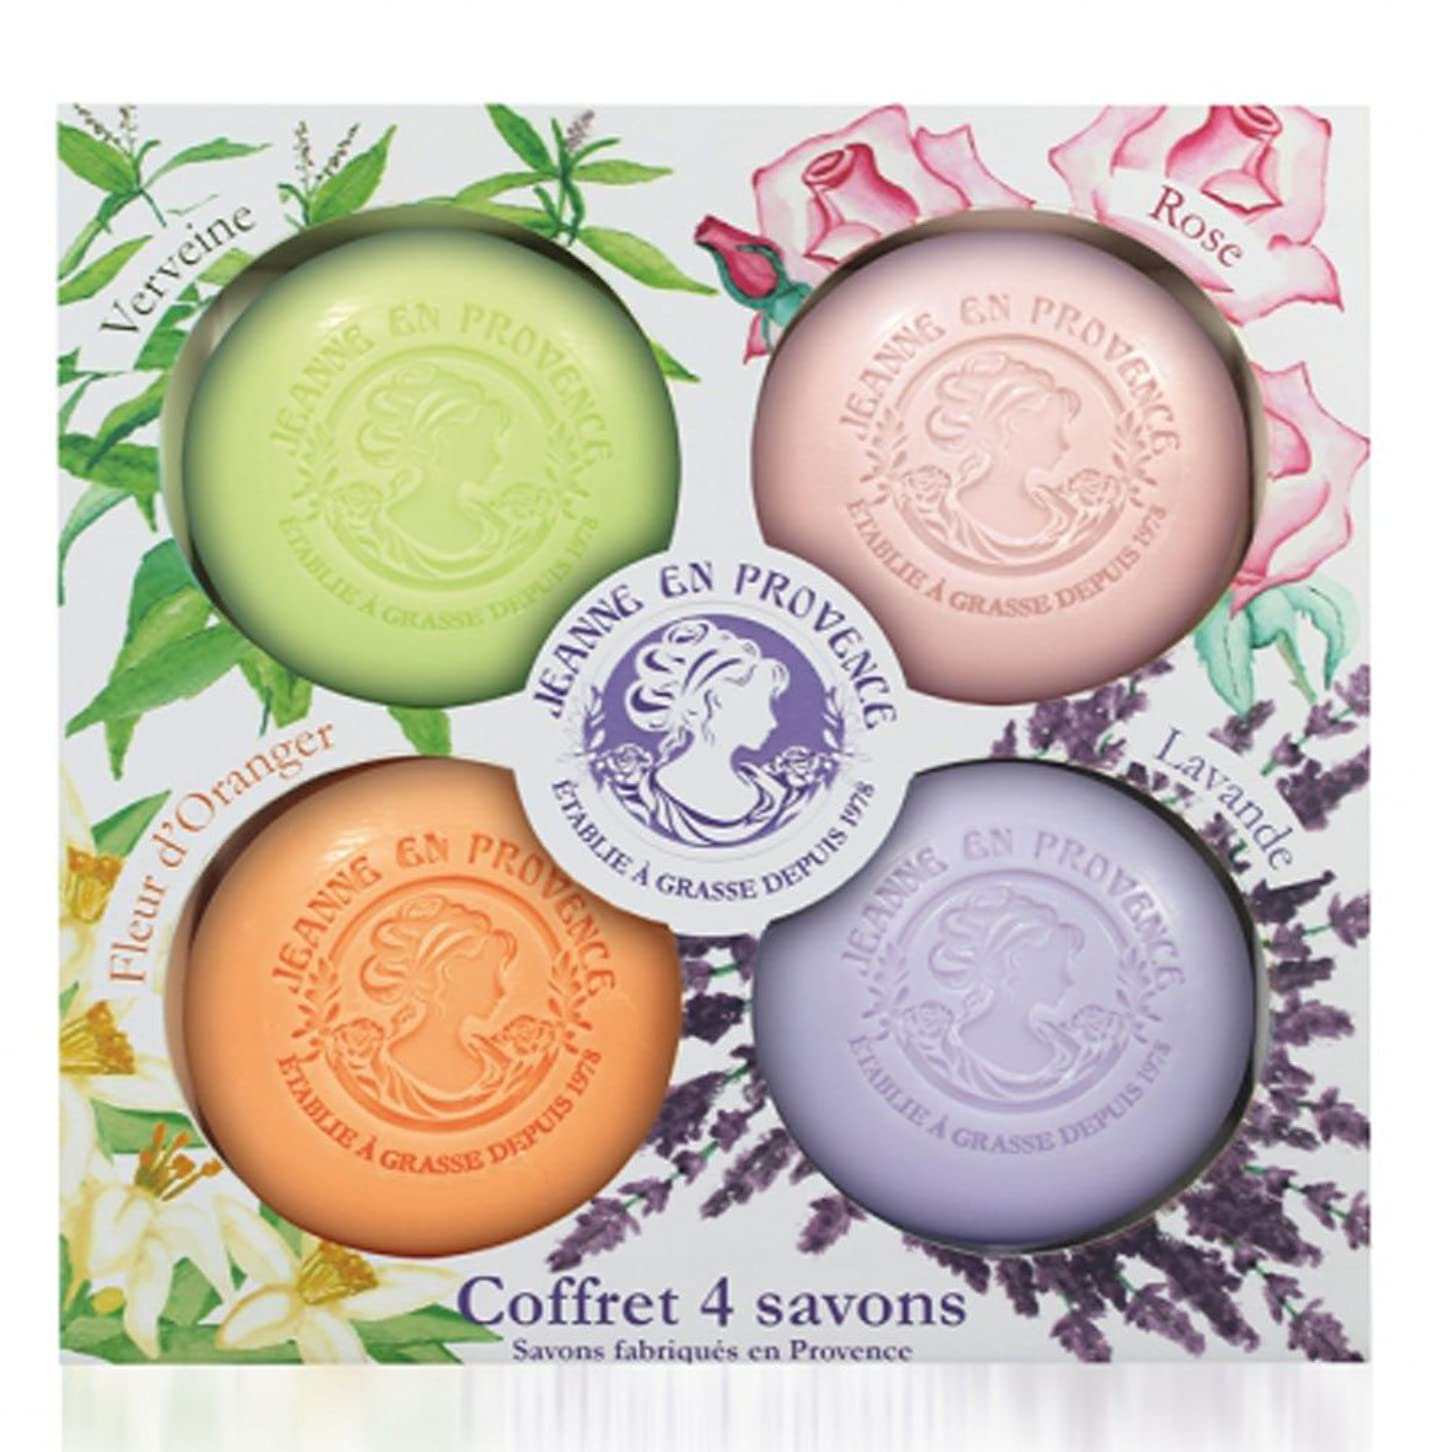 悪因子滞在法医学JEANNE EN PROVENCE solid soap, 4 in 1 set (verveine, rose, orange, lavender) make in france 1978, WHITENING & SMOOTH SOAP